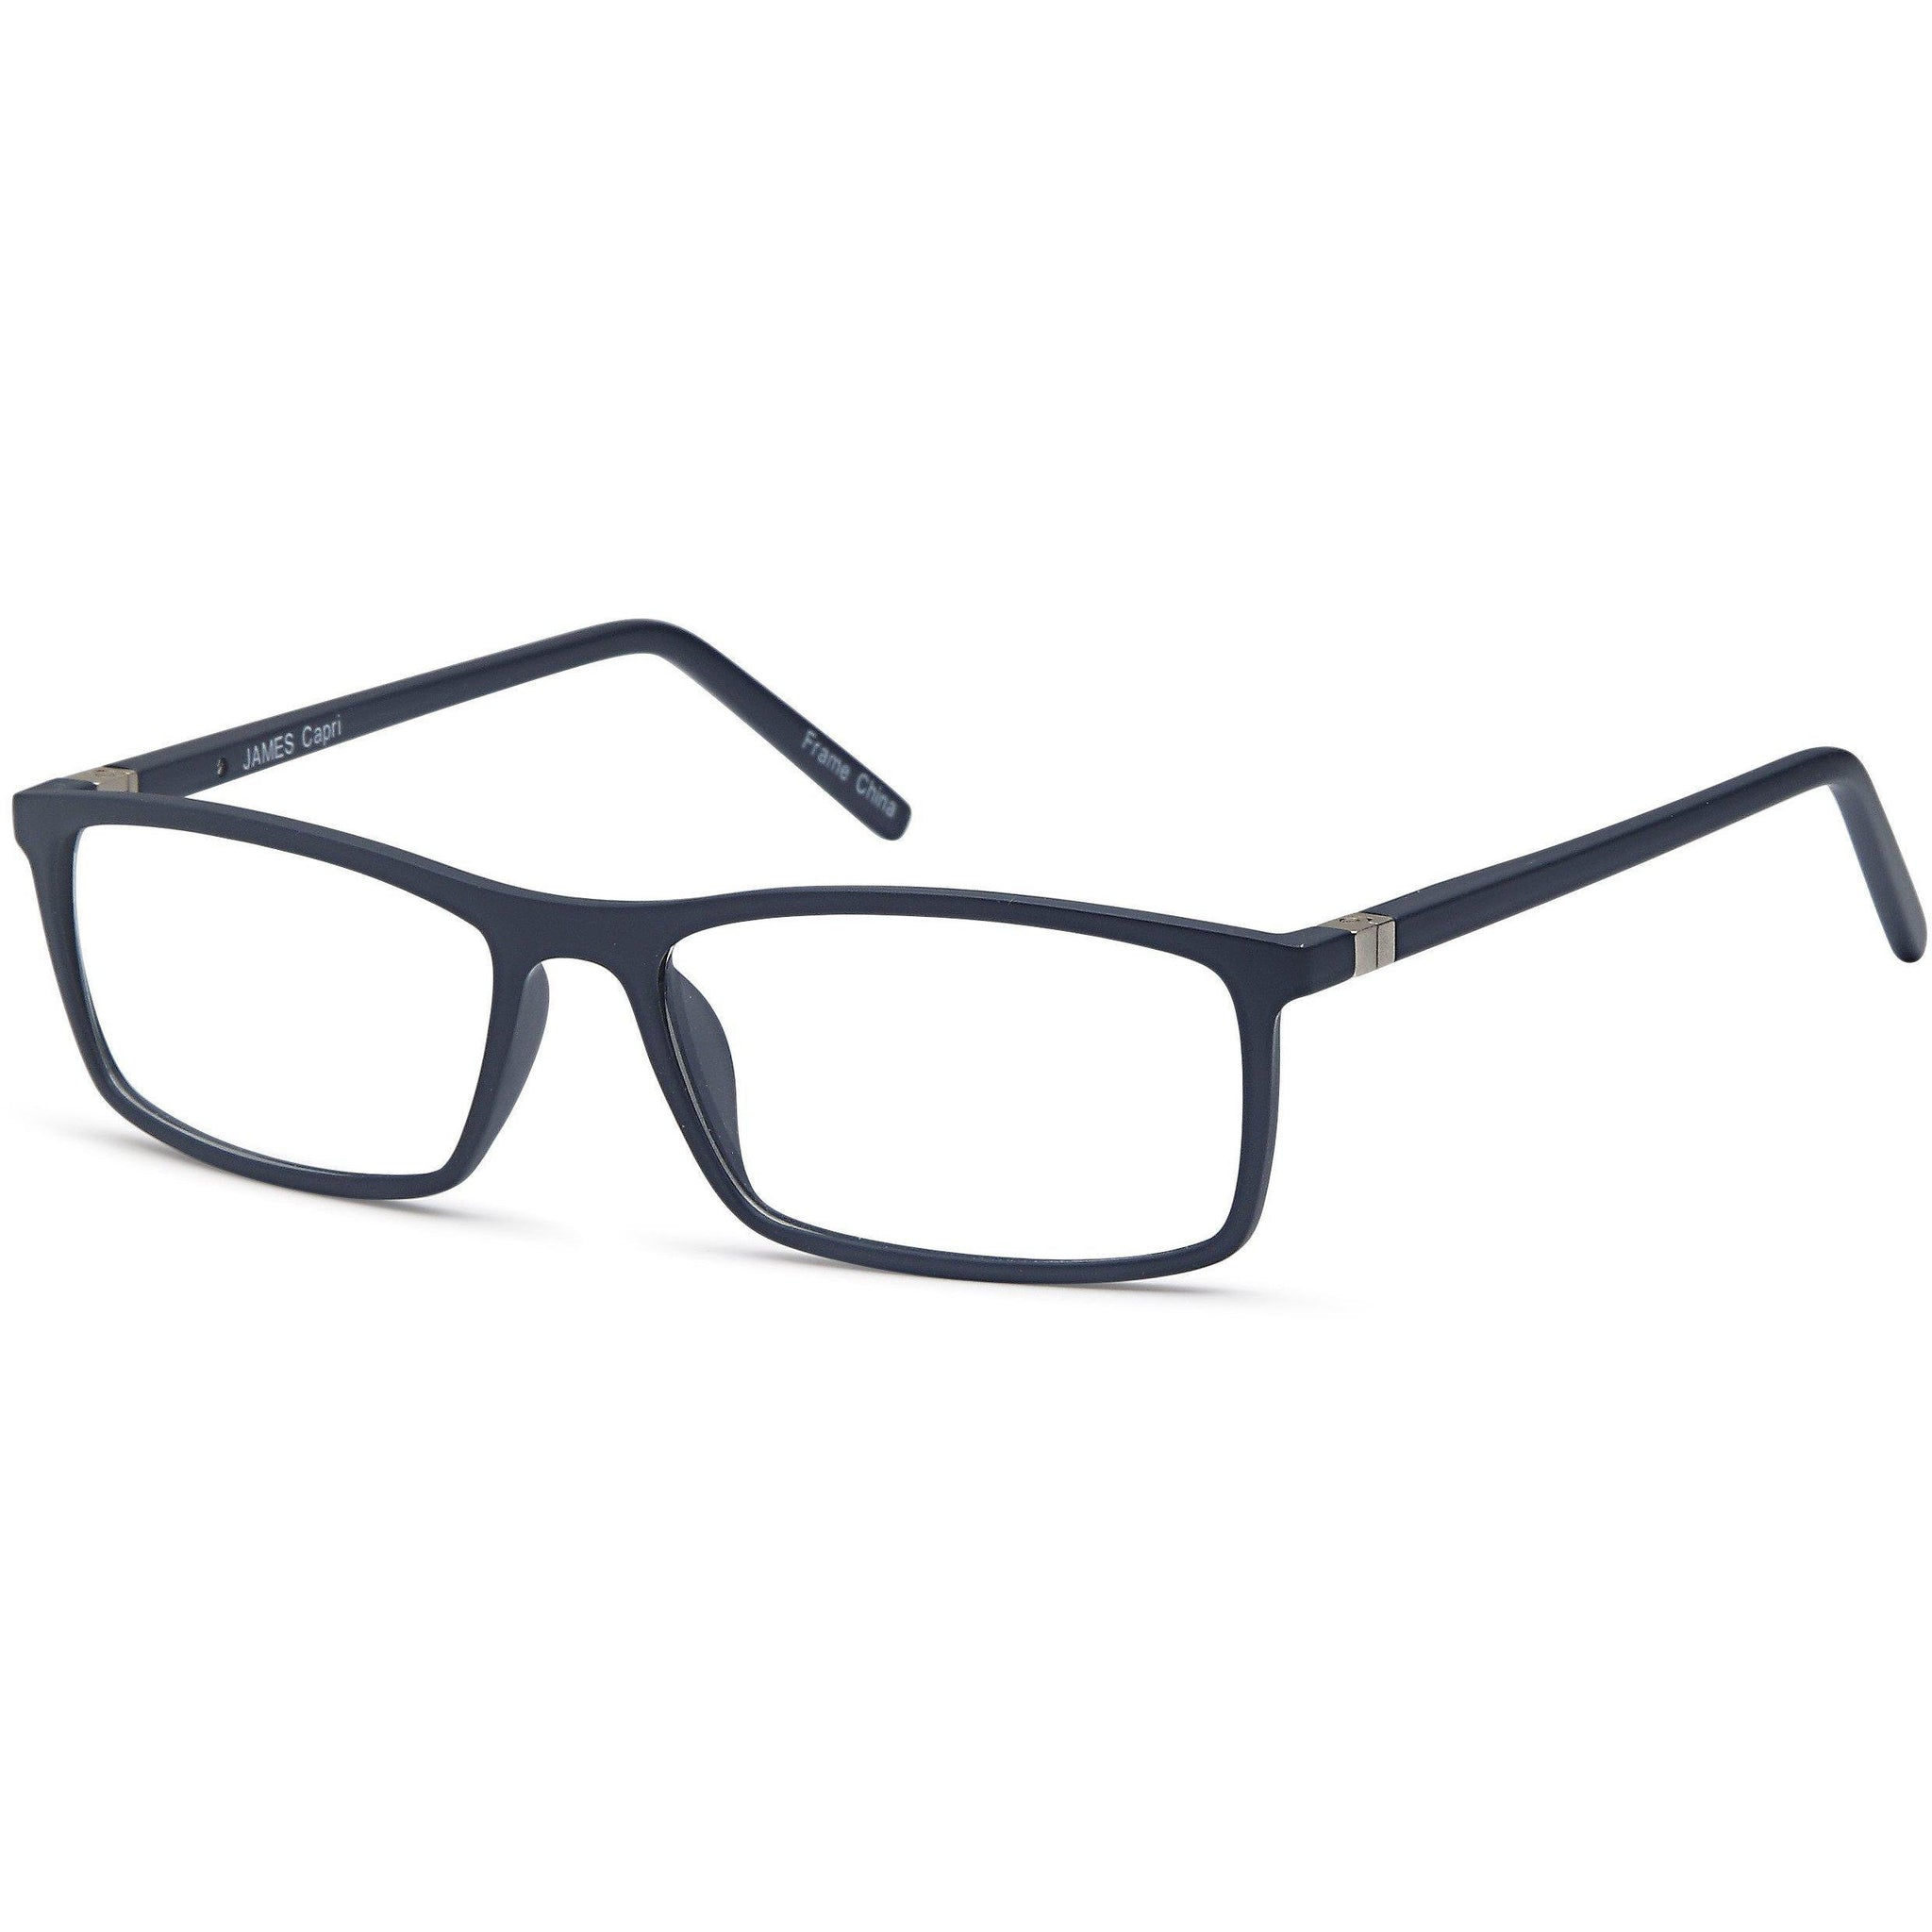 The Icons Prescription Glasses JAMES Eyeglasses Frame